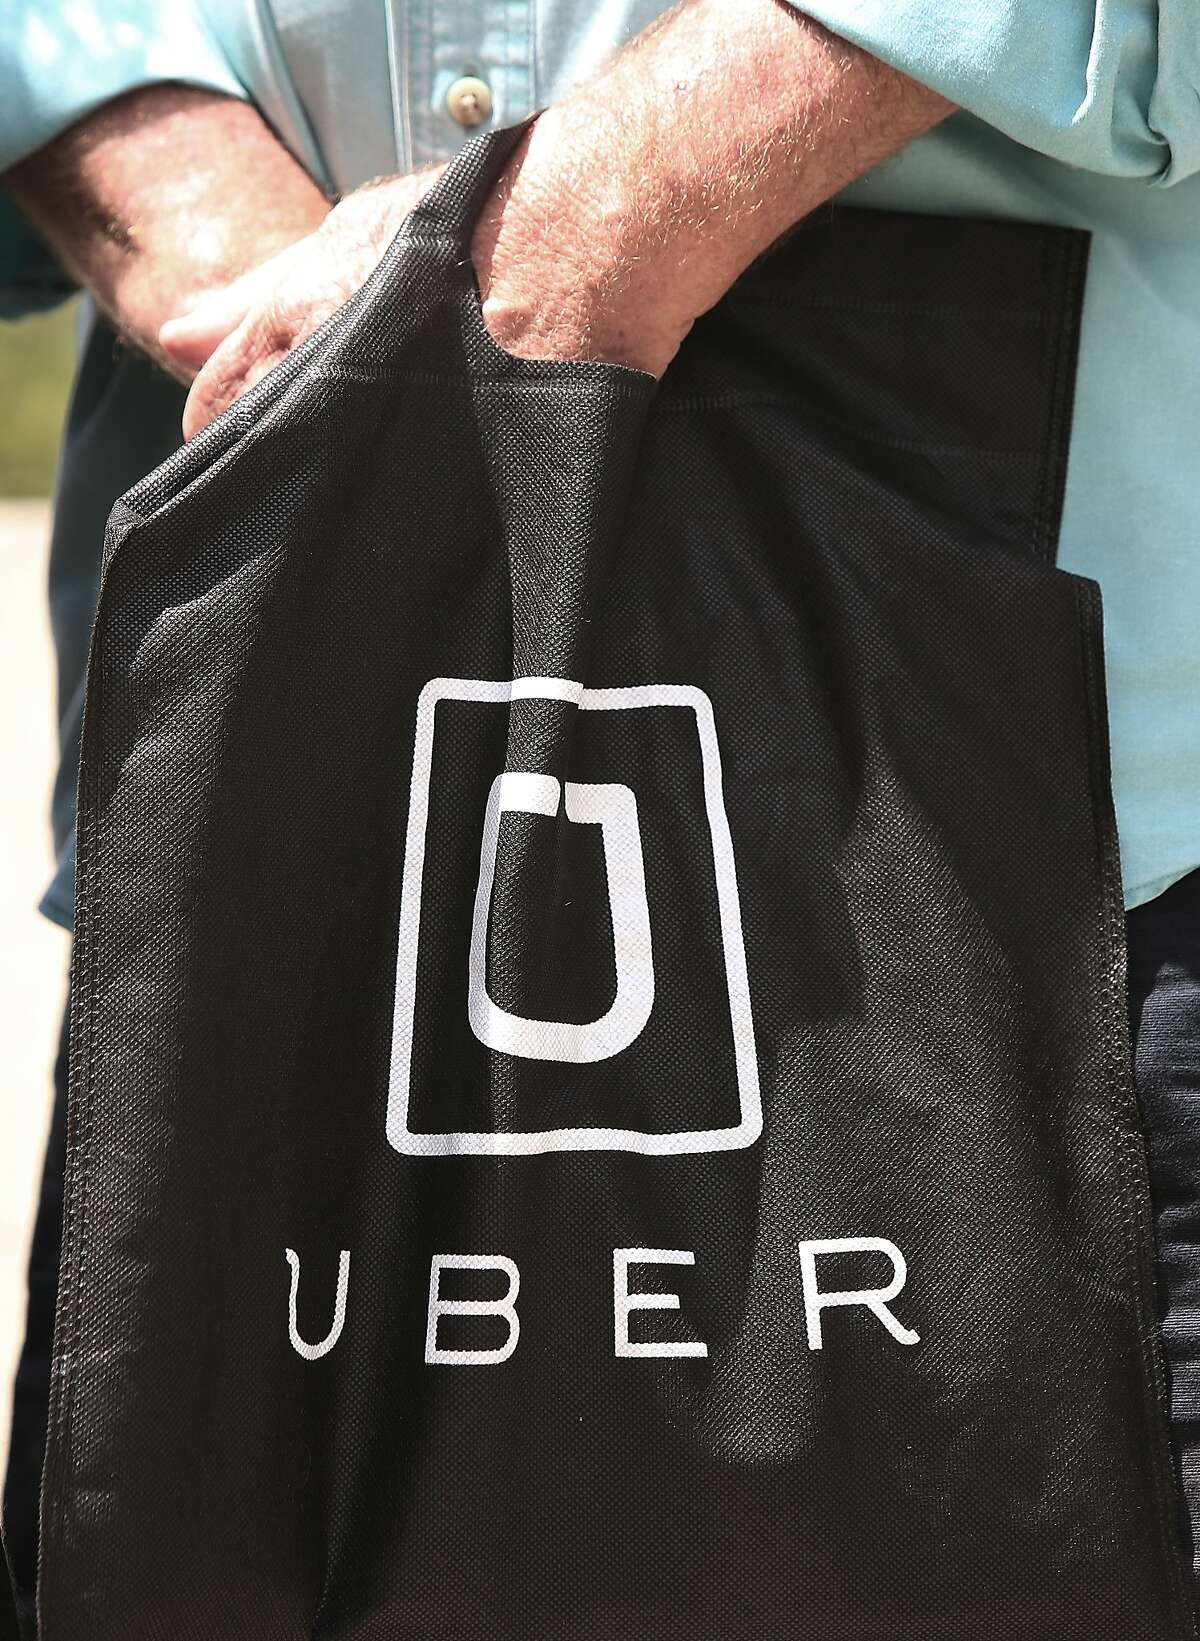 An Uber driver holds an Uber bag during a press conference at the plaza entrance of 450 Golden Gate Ave. in San Francisco, Calif., on Thursday, August 6, 2015. Boutrous and Uber drivers discuss the O'Conner vs. Uber lawsuit seeking to reclassify Uber drivers in California as employees.